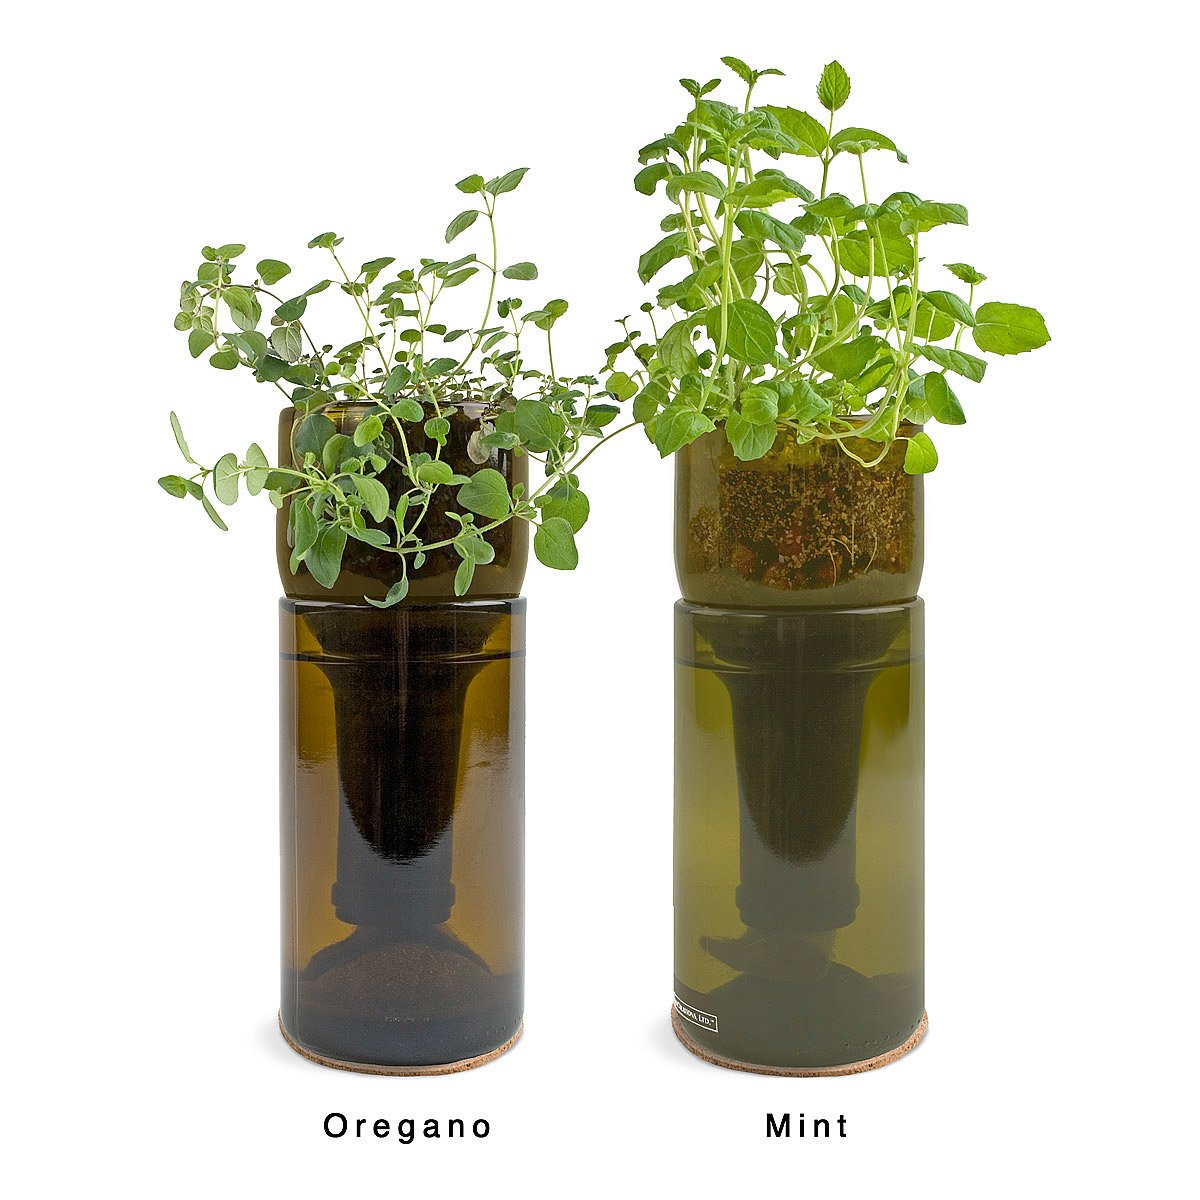 Hydroponic Kitchen Herb Garden Growbottle Indoor Herb Garden Kit Wine Bottle Planter